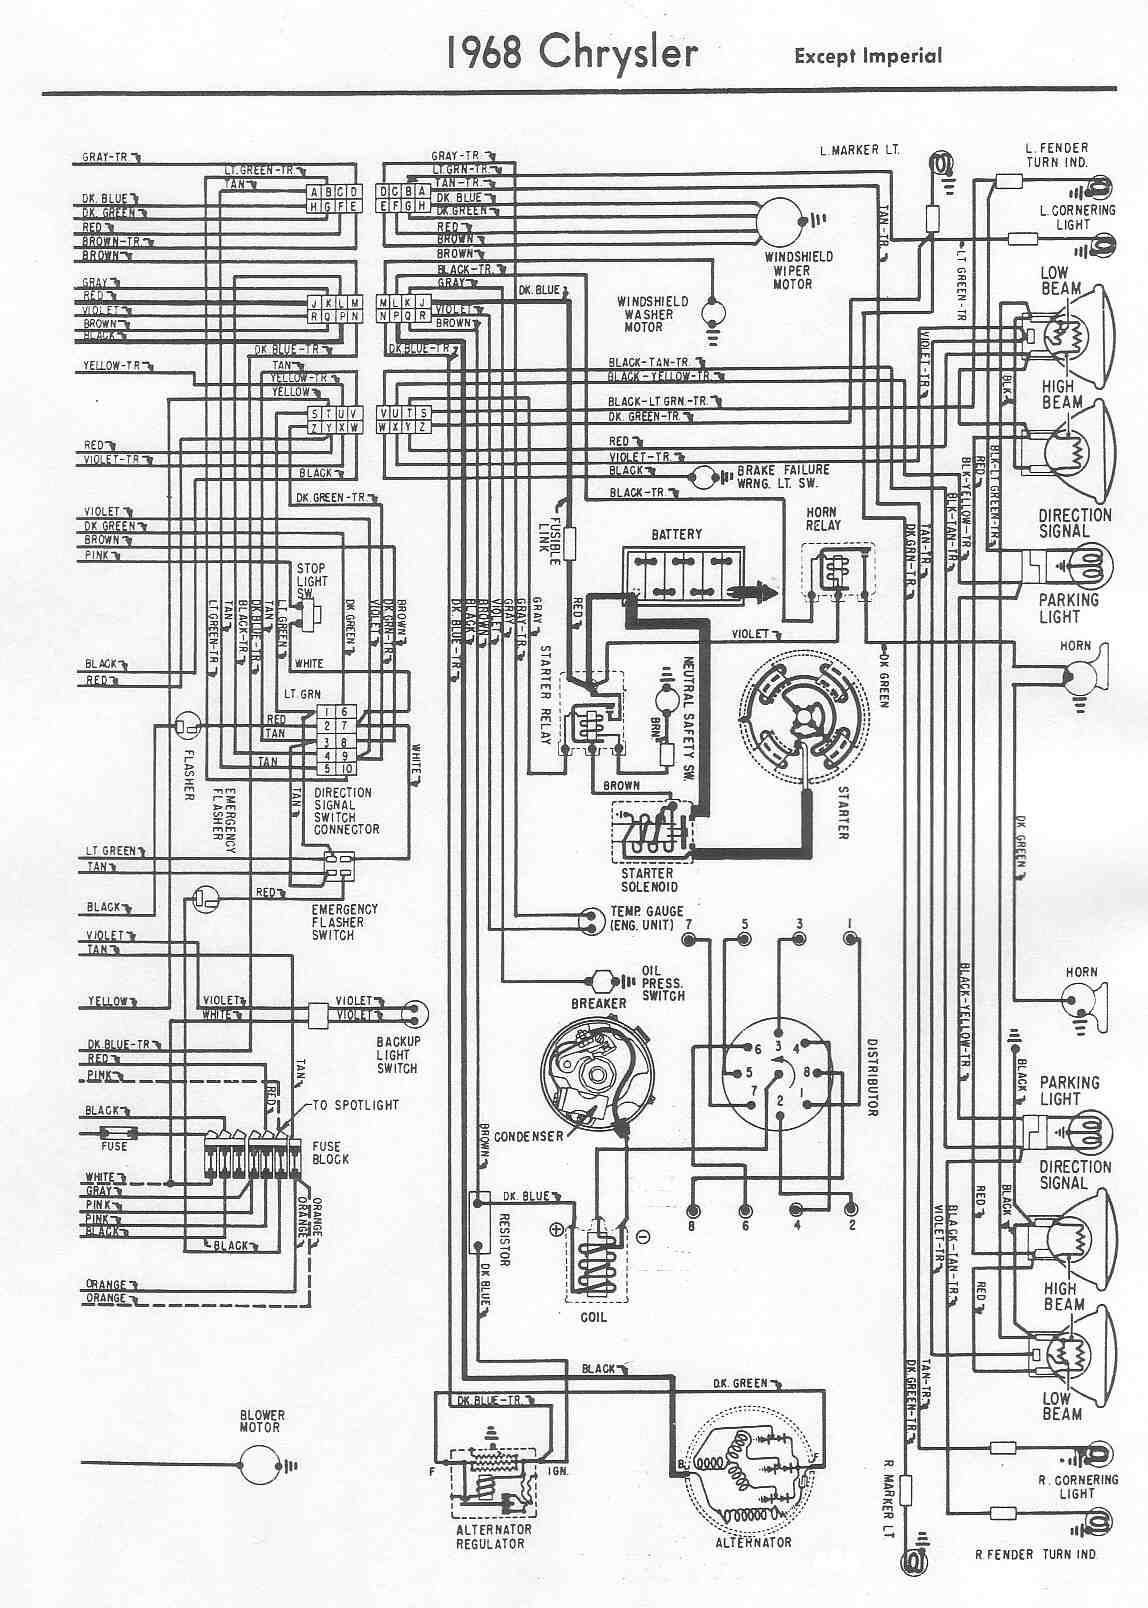 68 dodge neutral safety switch wiring schematic wiring diagram68 dodge neutral safety switch wiring wiring diagram [ 1148 x 1608 Pixel ]